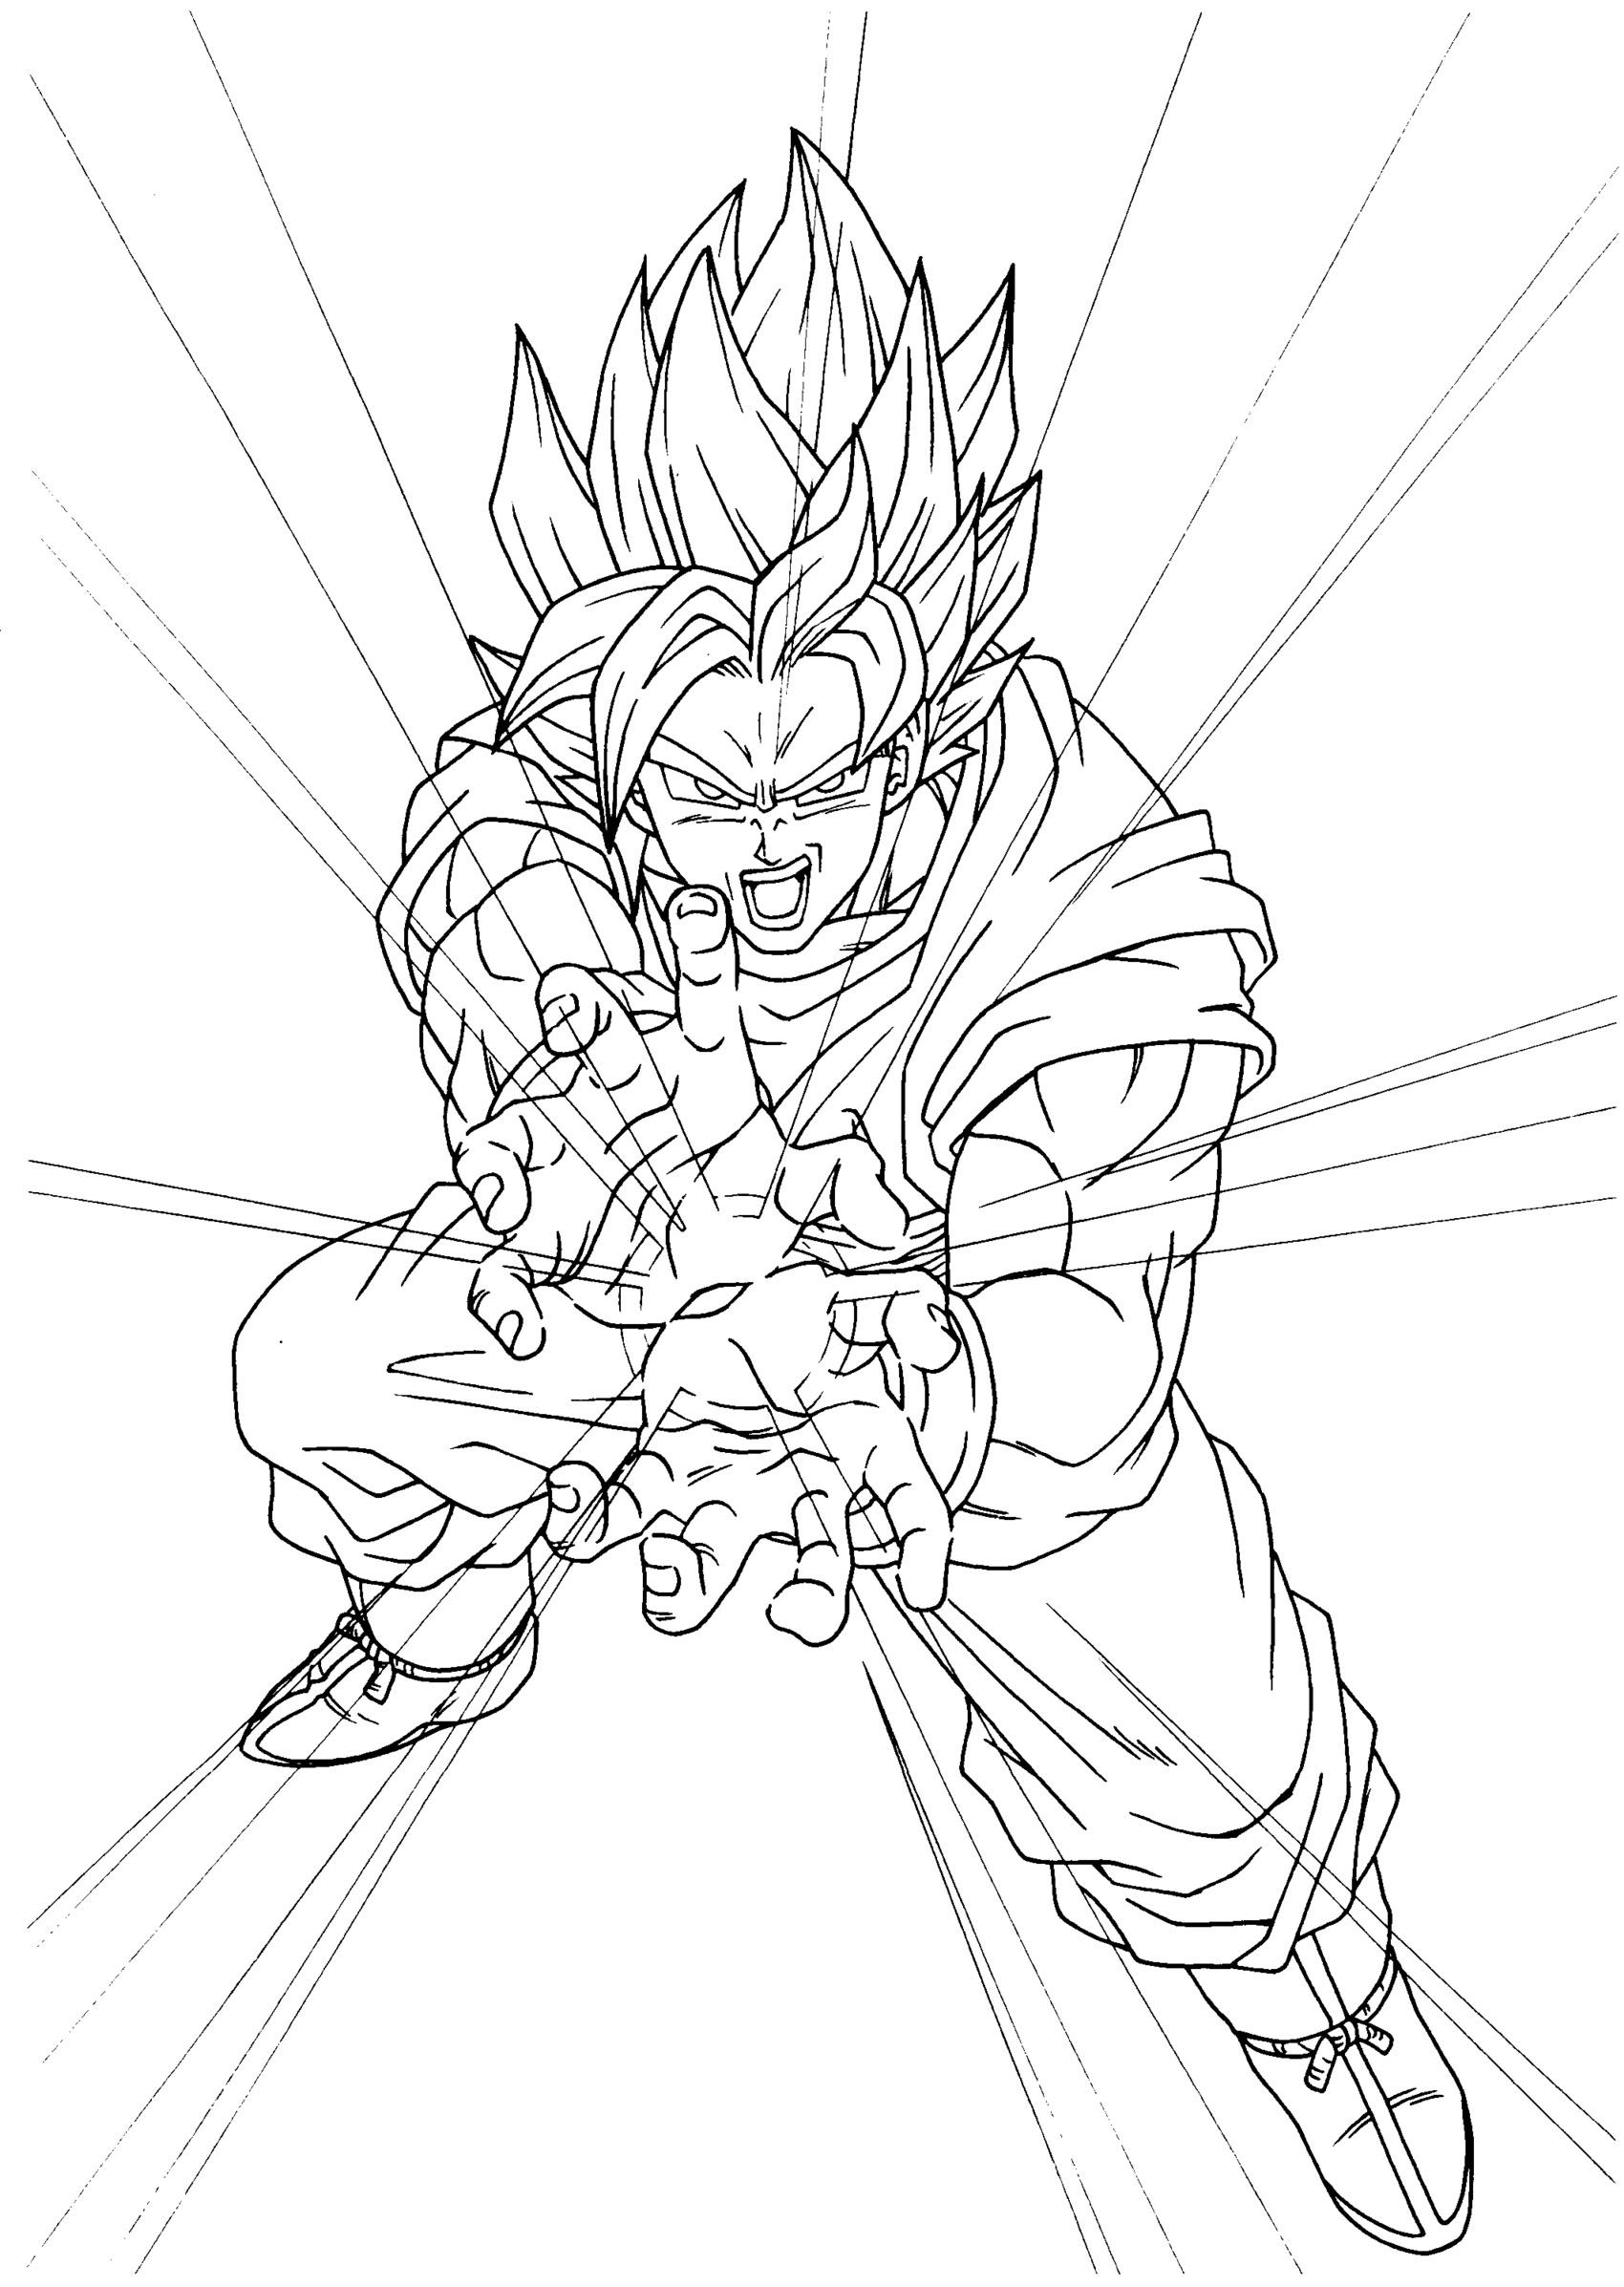 dragon ball z coloring sheets coloring pages dragon ball z animated images gifs coloring dragon z sheets ball